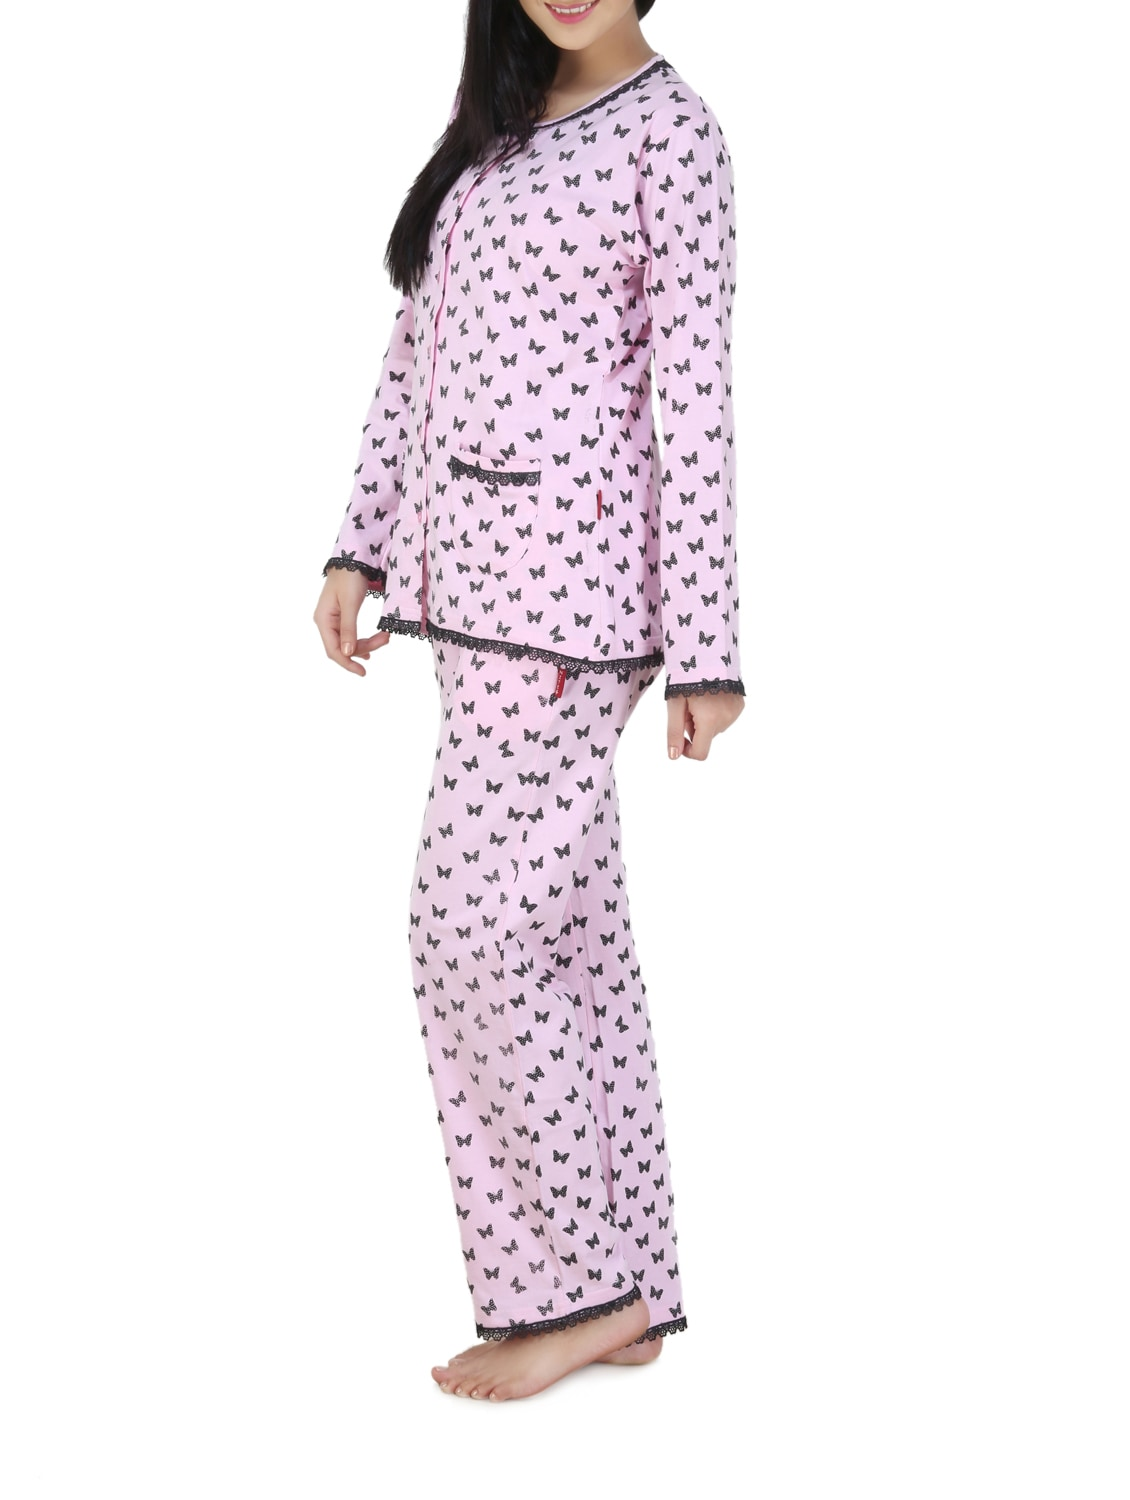 86073ce23a Buy Baby Pink And Black Pajama Set by Nite Flite - Online shopping for  Nightwear Sets in India